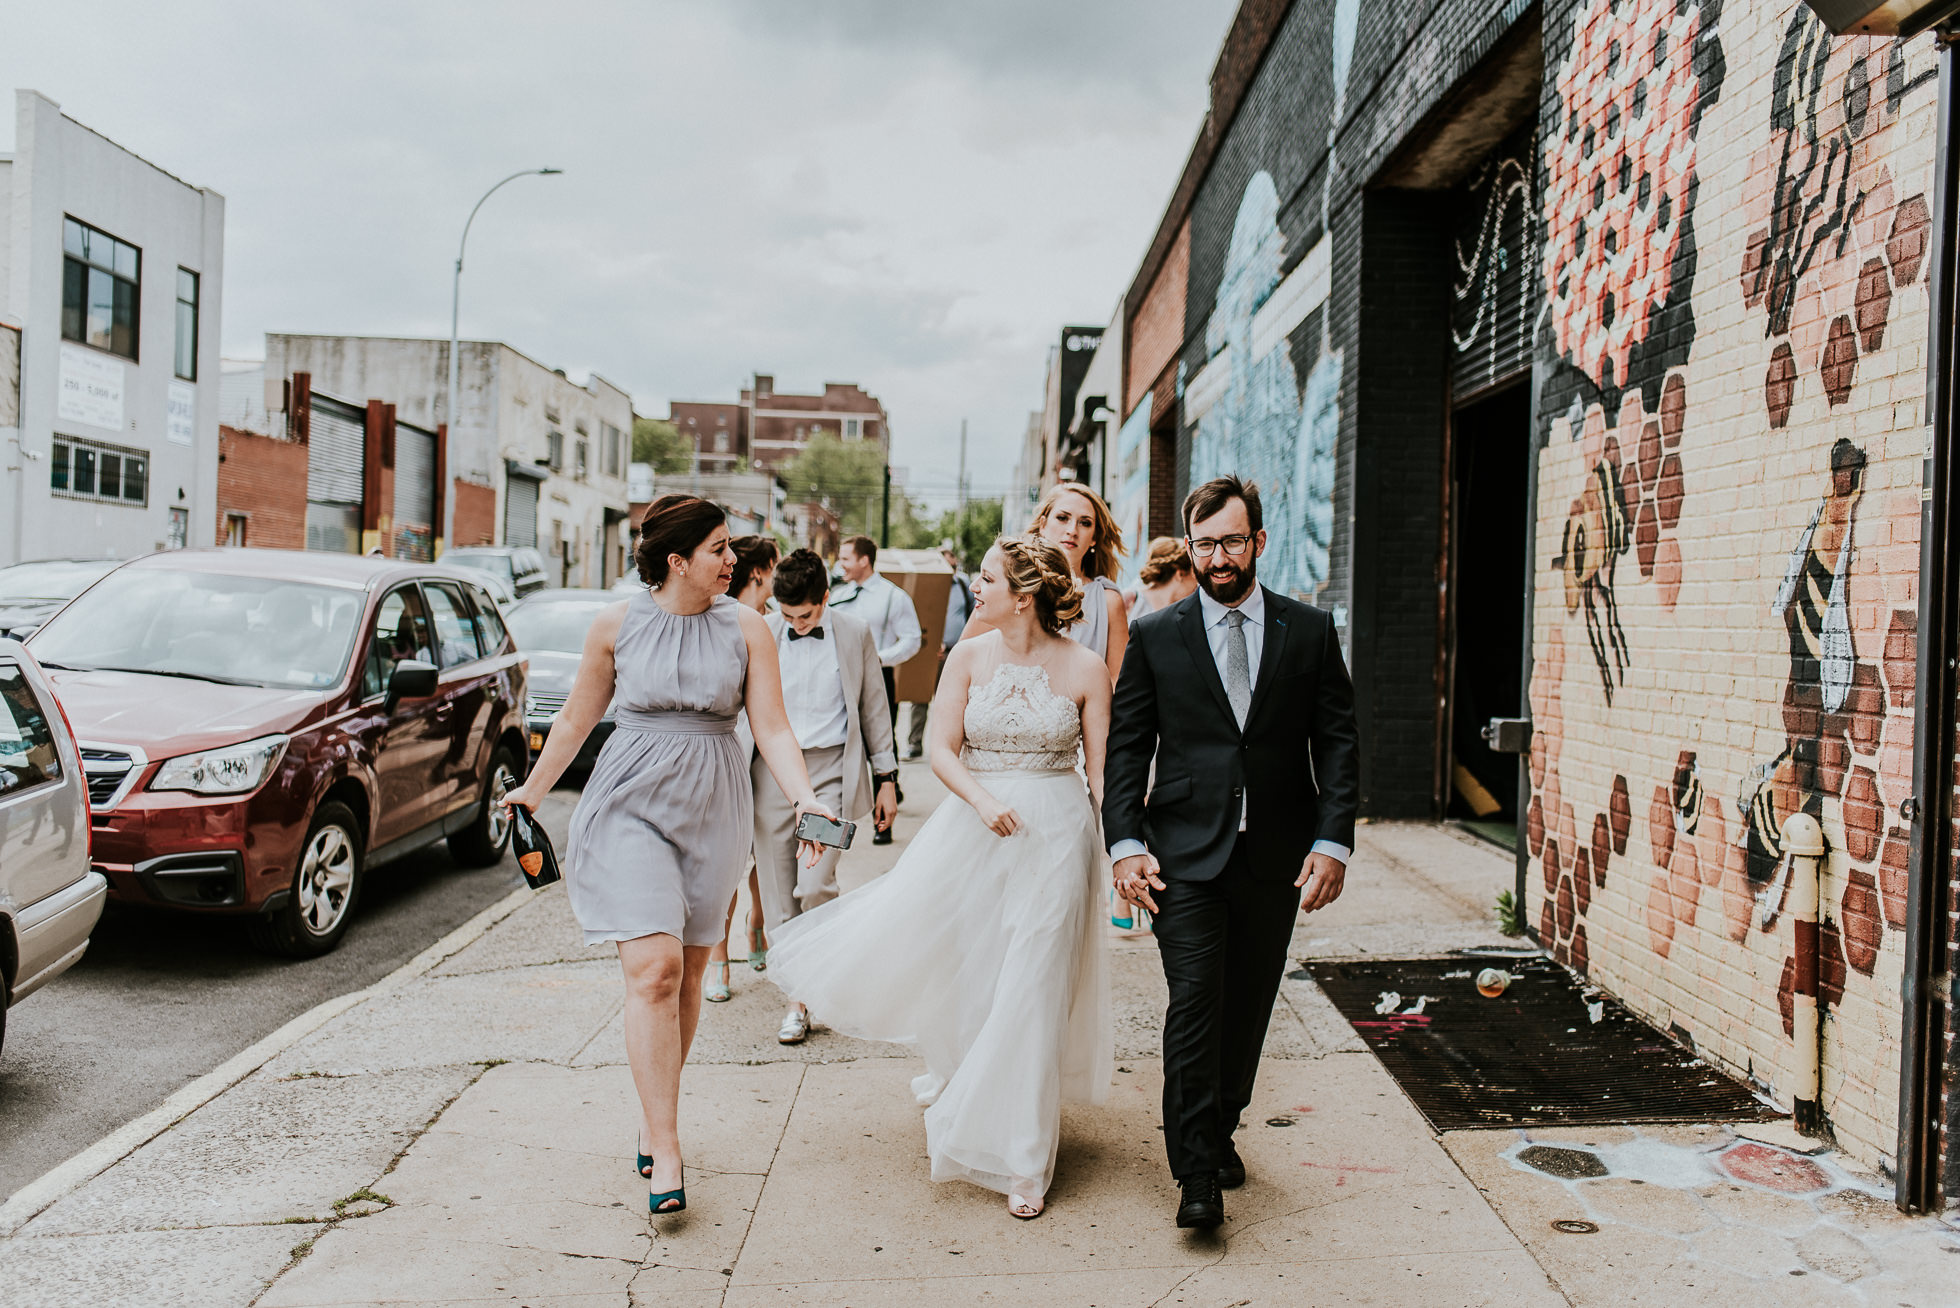 wedding party walking down street photographed by Traverse The Tides